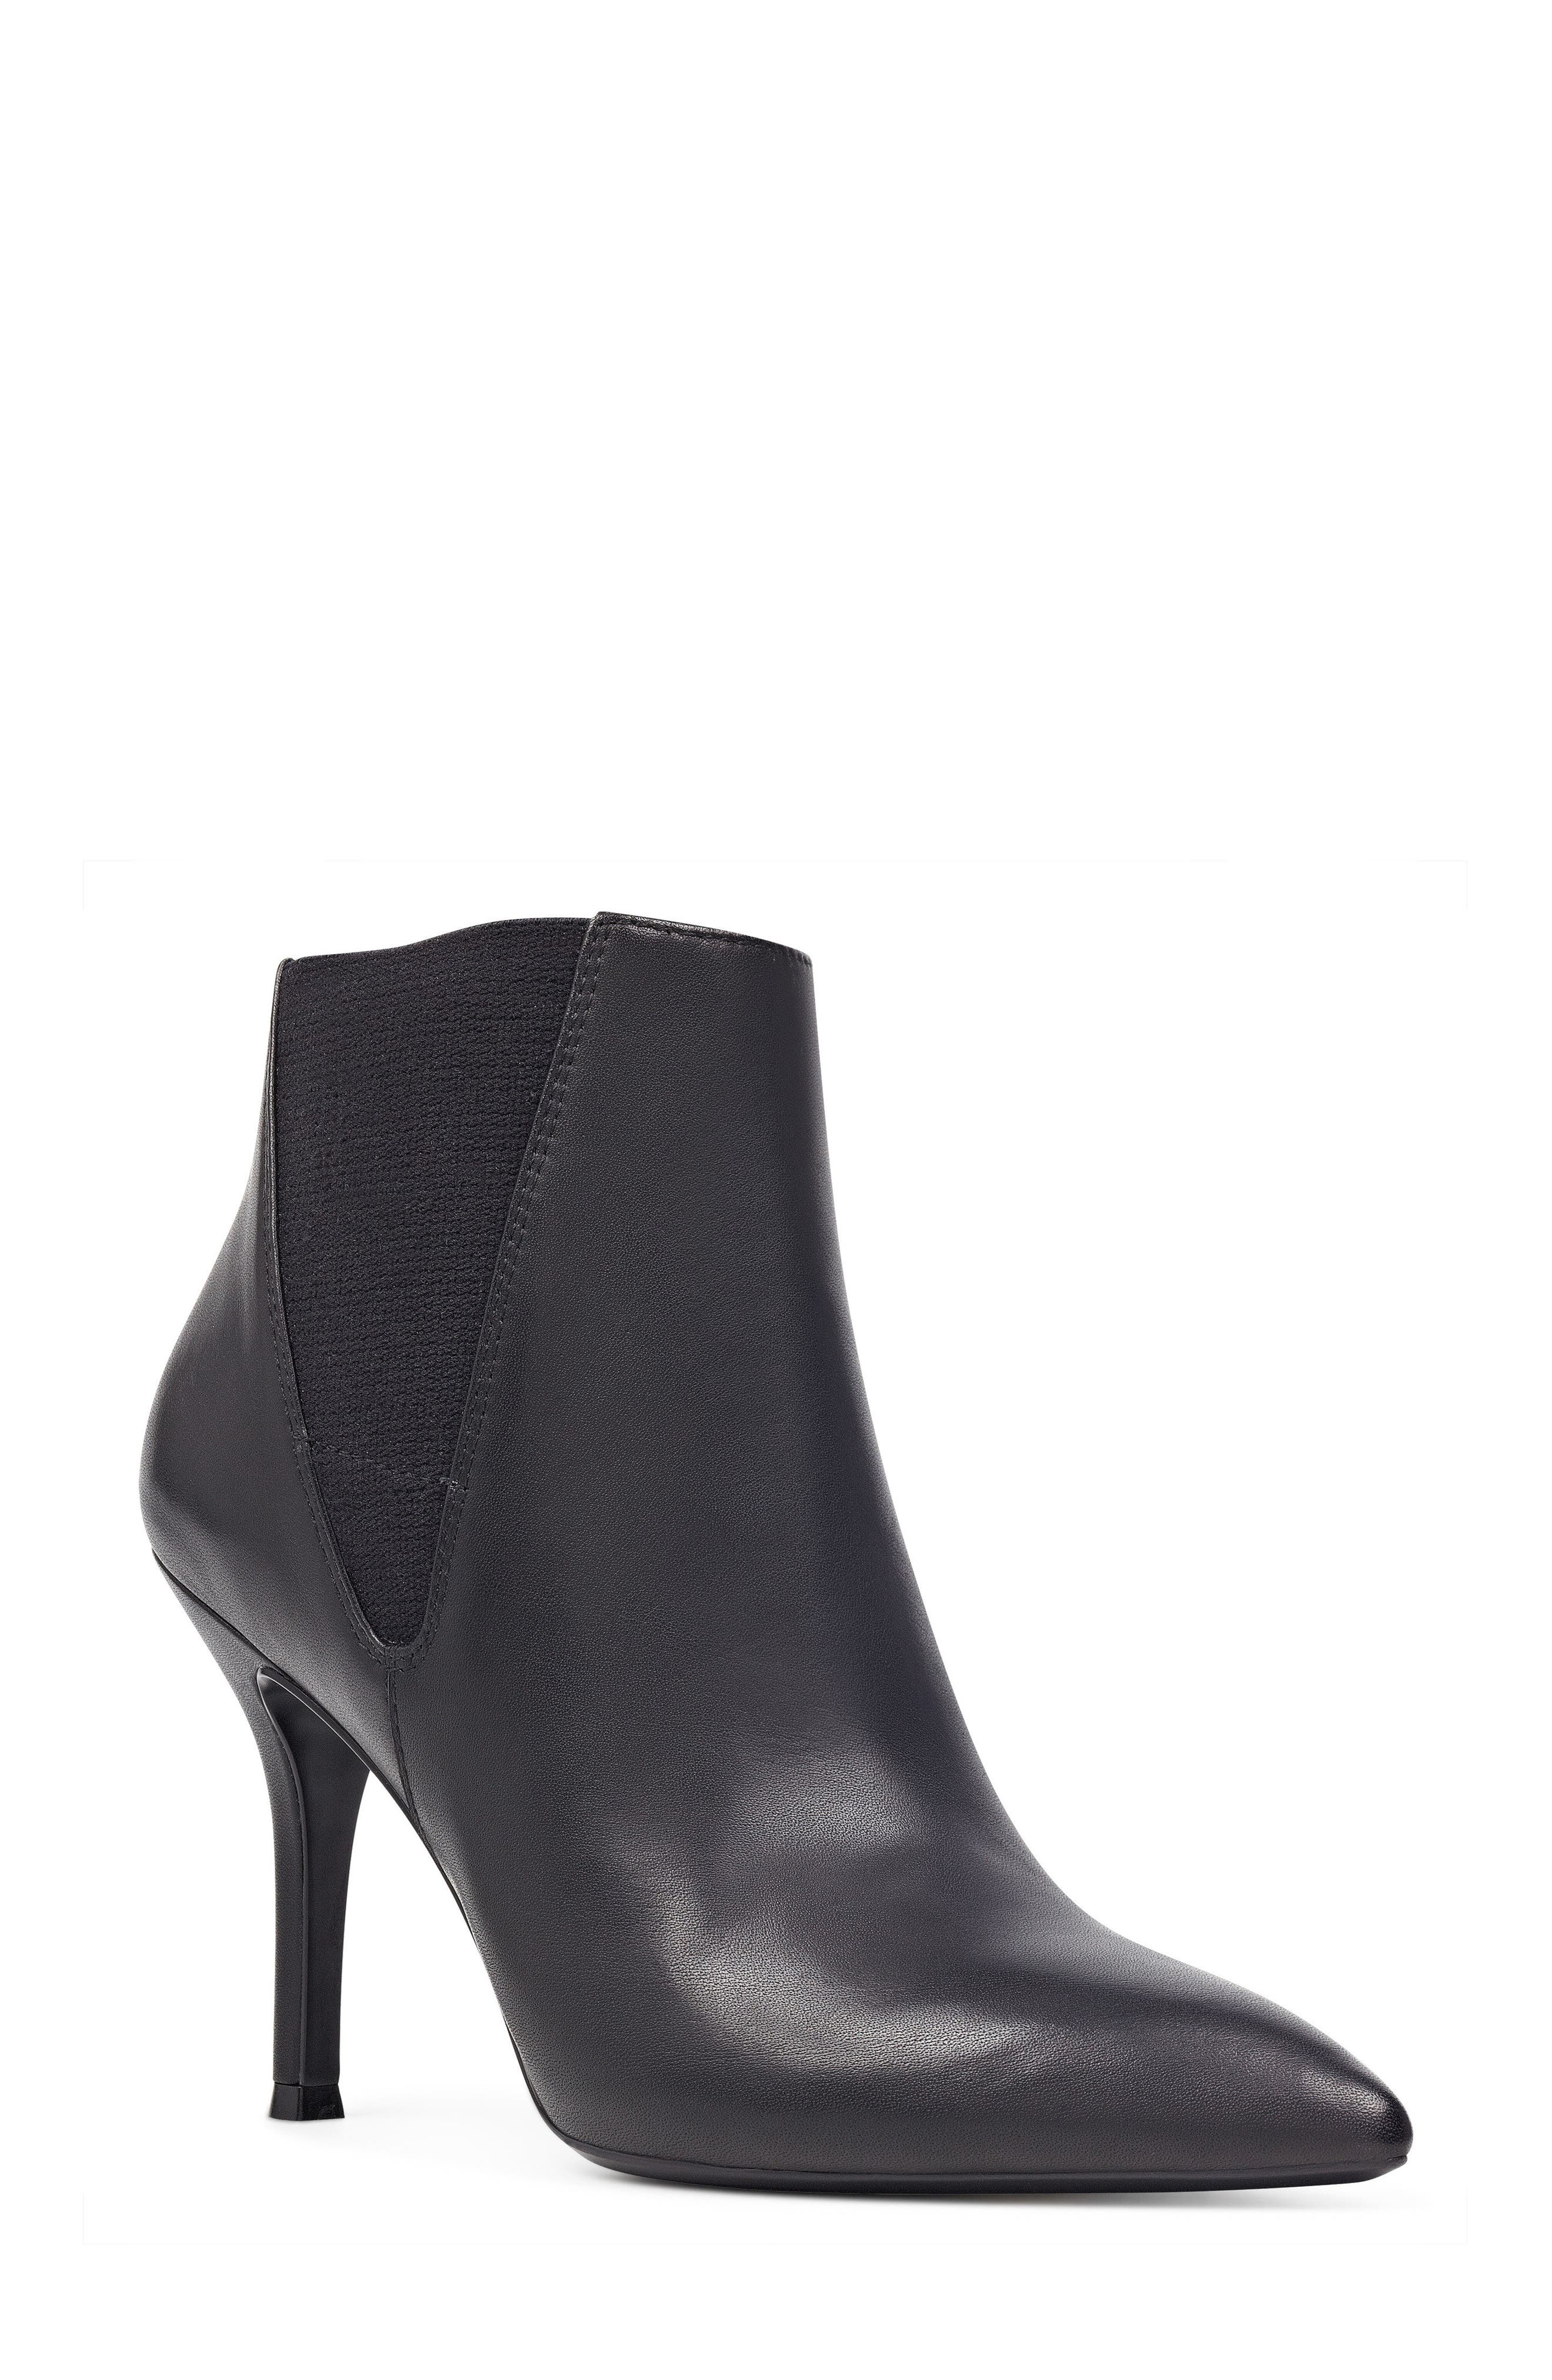 NINE WEST Pointy Toe Bootie, Main, color, 001